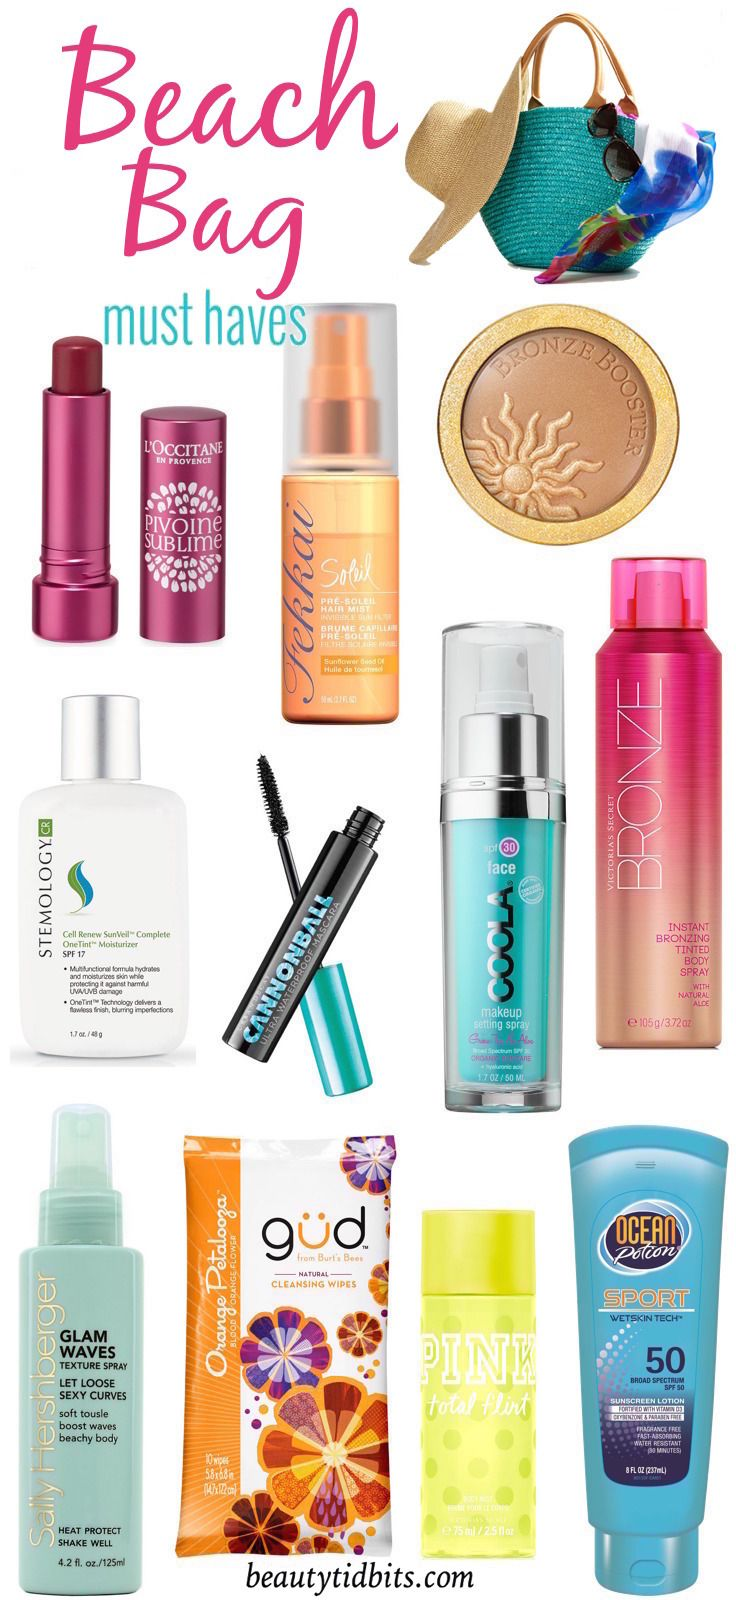 Beach Bag Beauty Essentials: 10 Must-Have Products